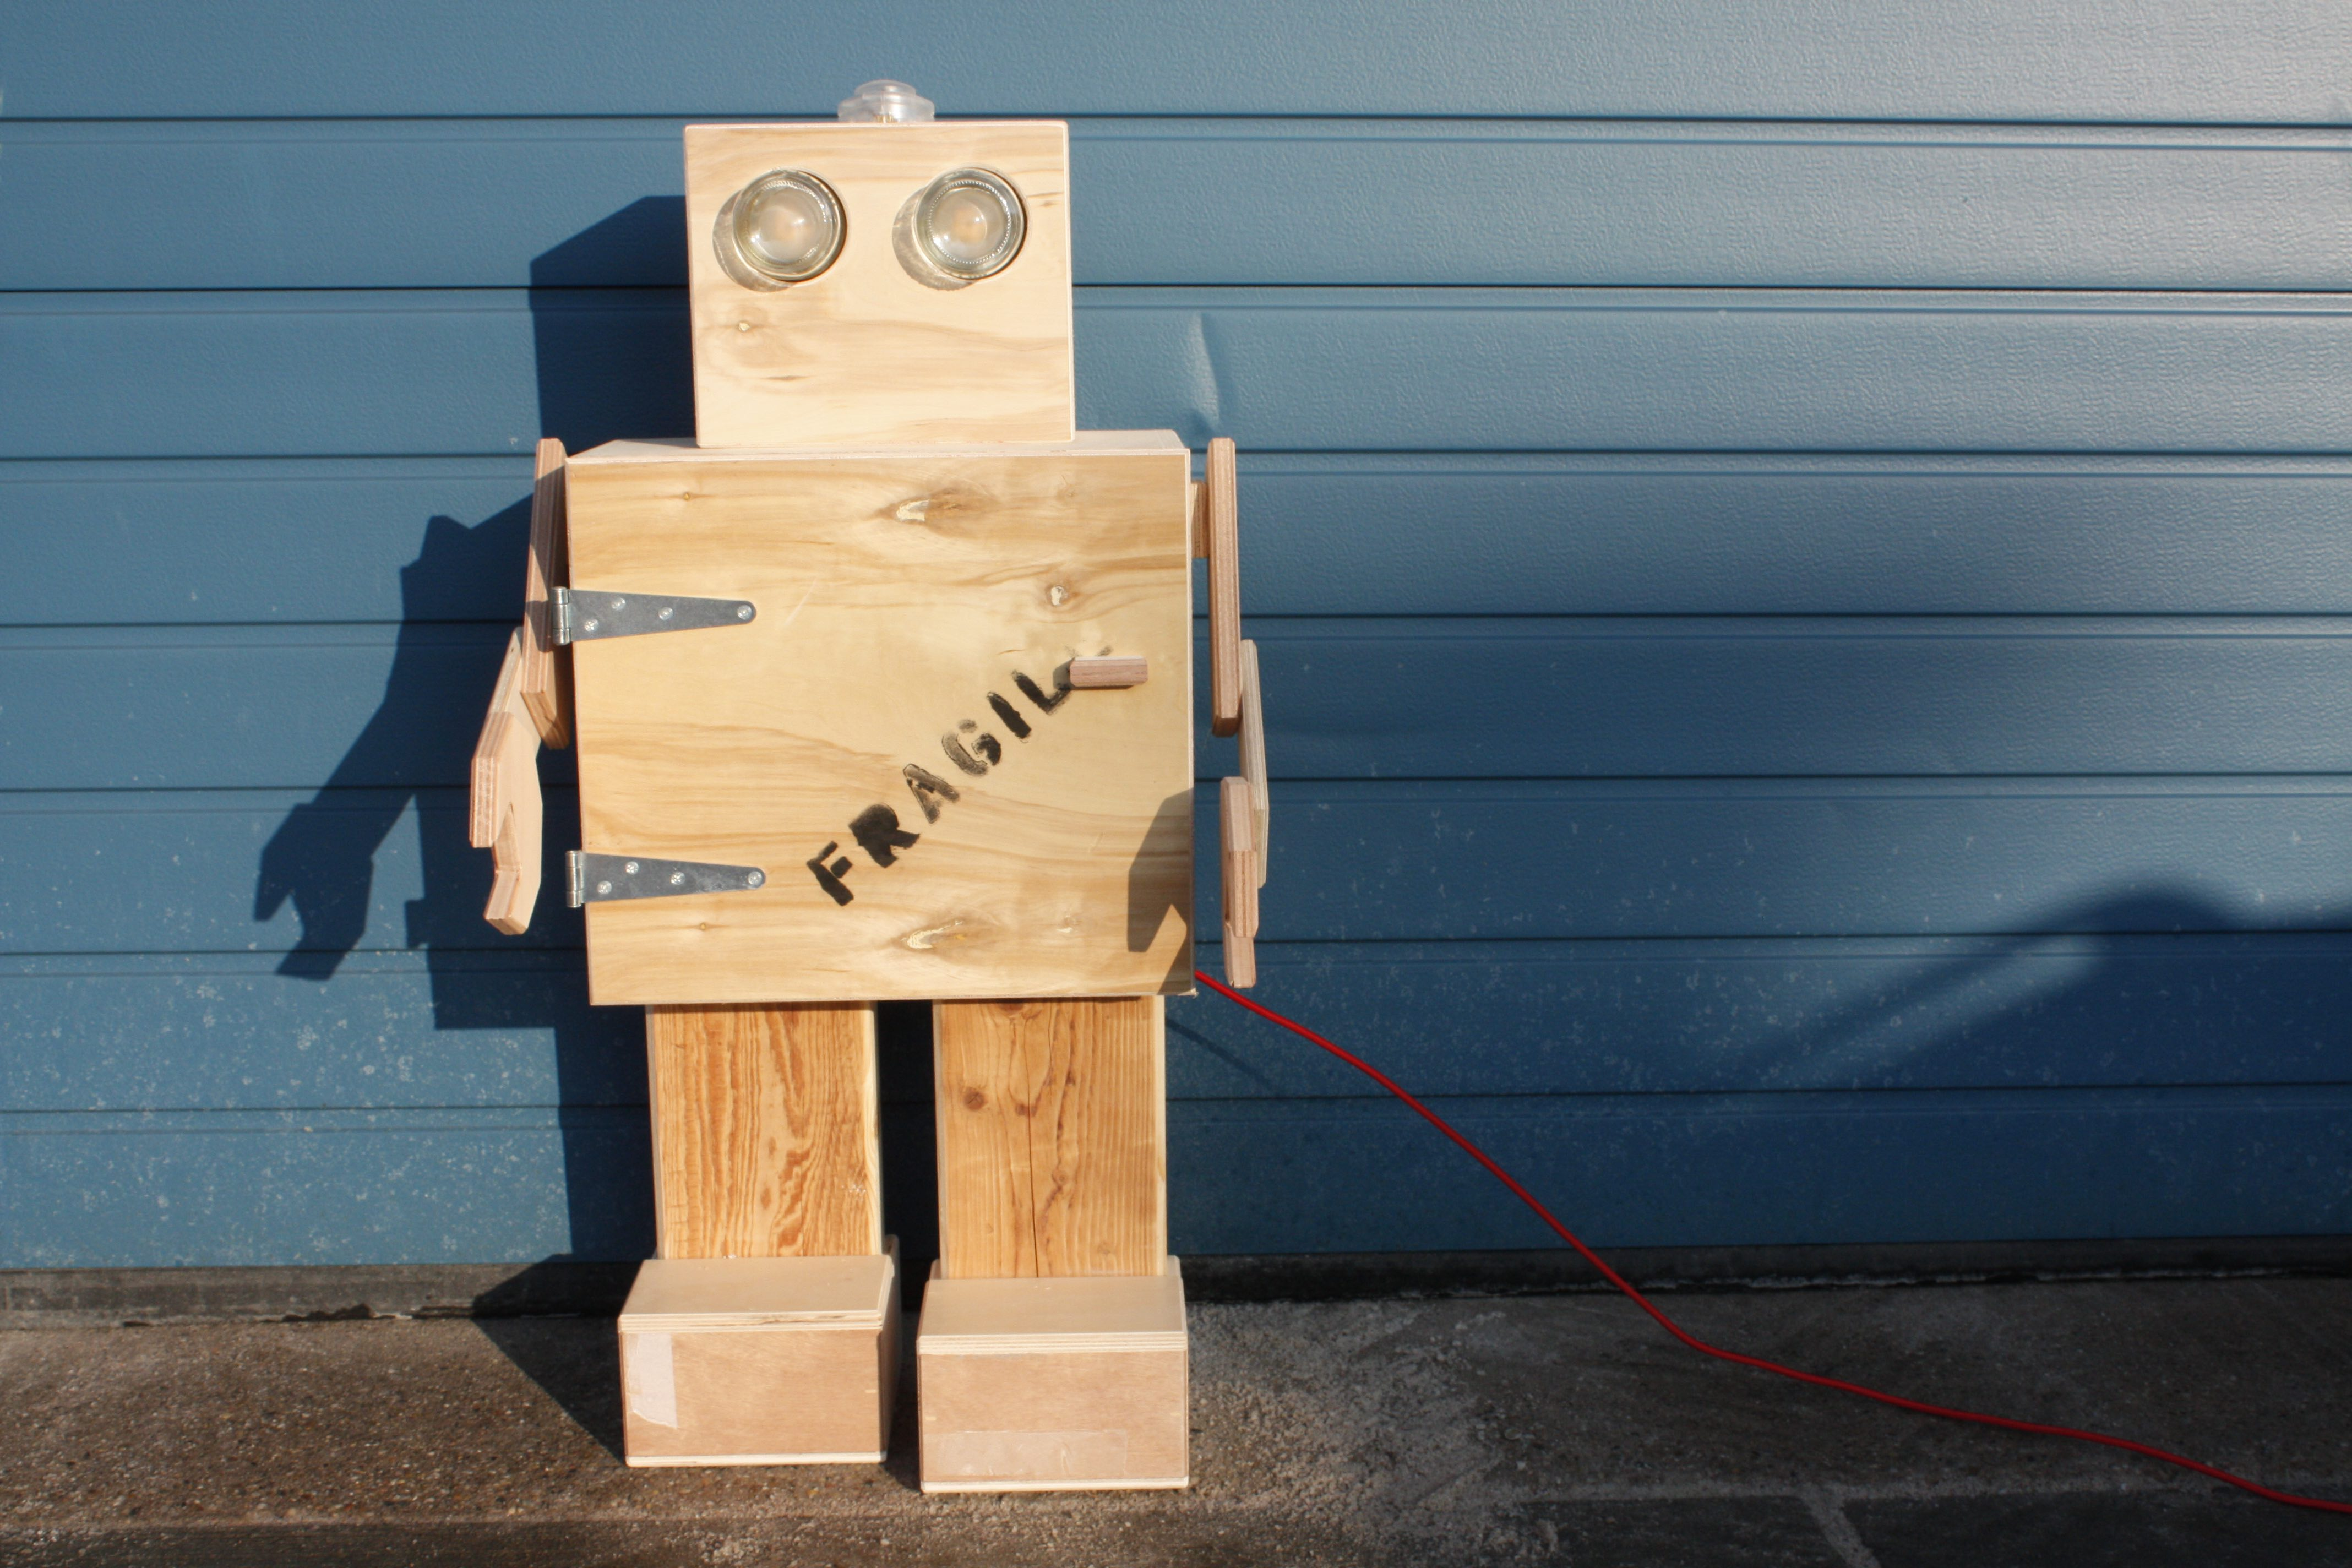 Rijkswachter - robot made from the wooden crates that used to protect precious artwork! Very smart upcycling.